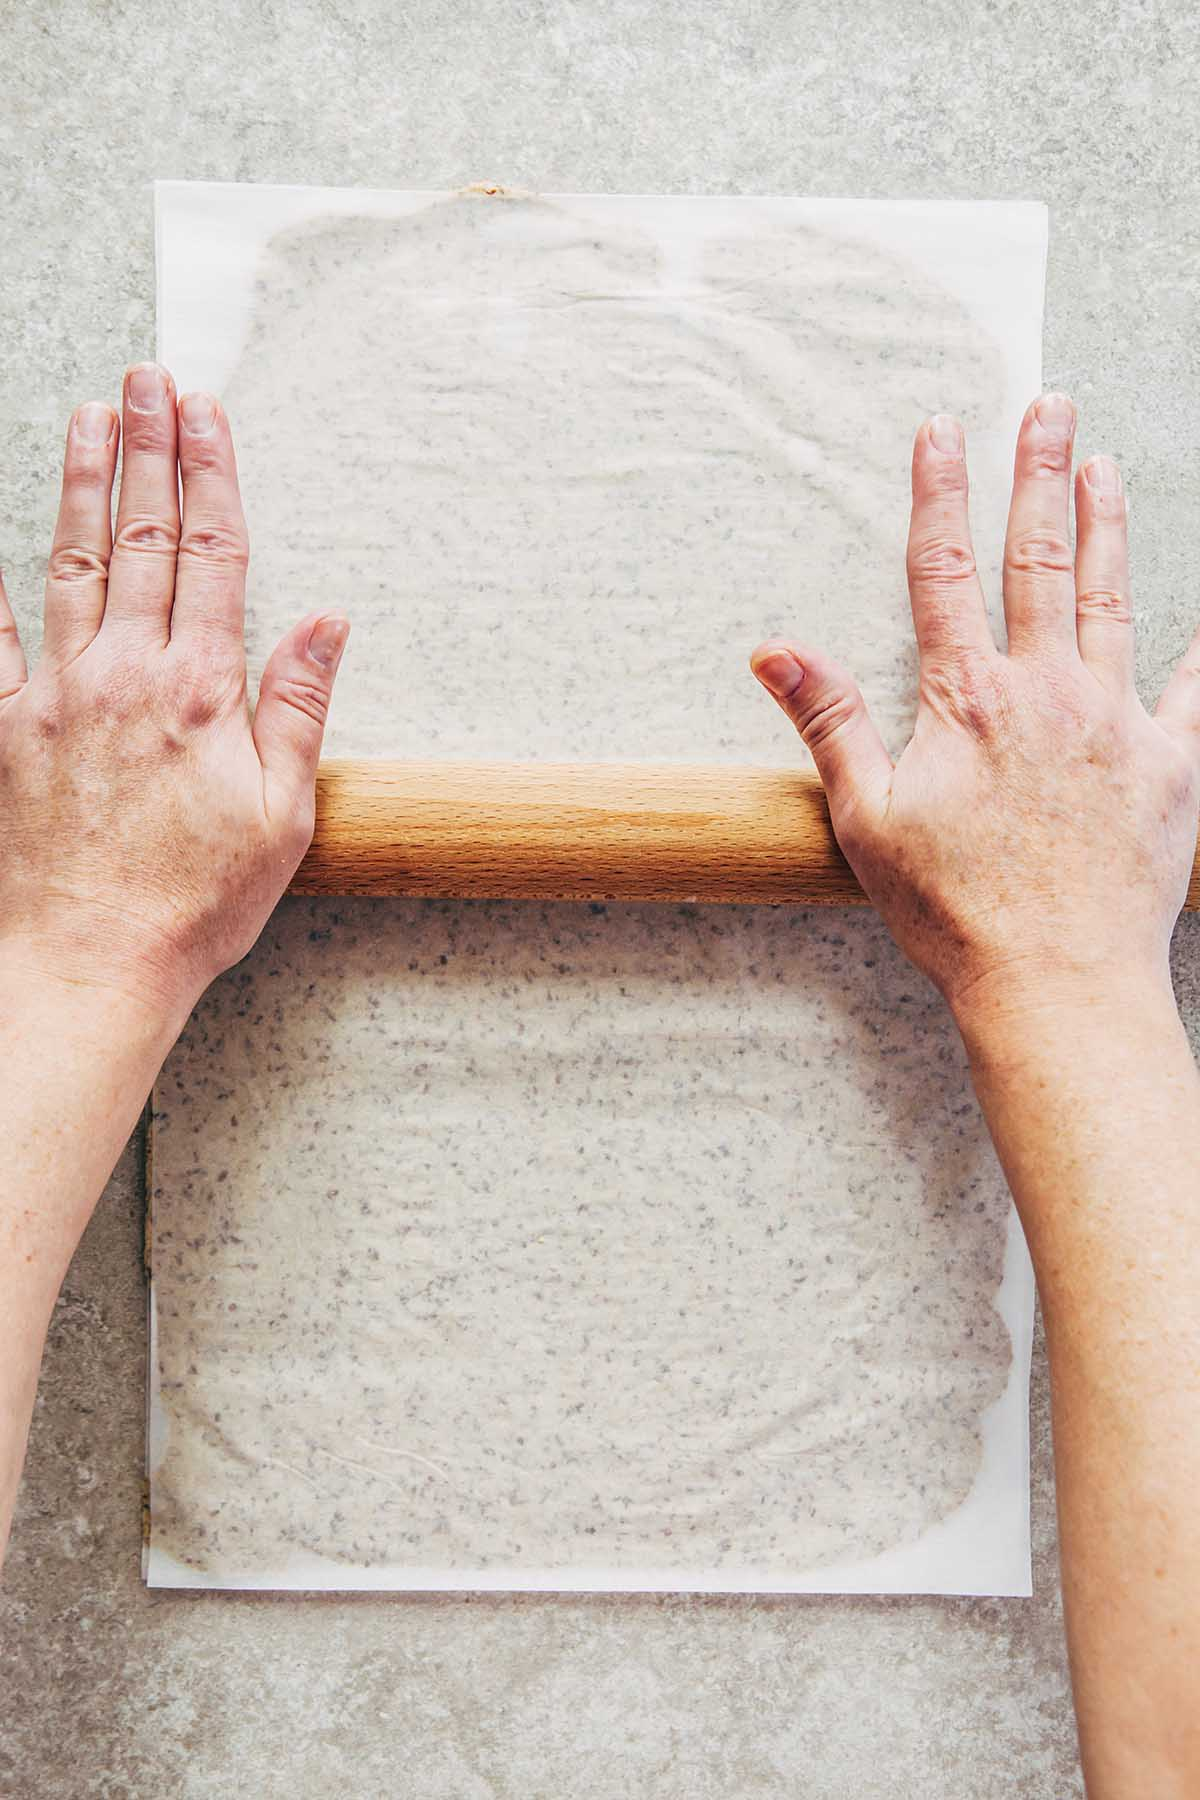 Two hands using a rolling pin to smooth oat cracker dough between two pieces of parchment paper.